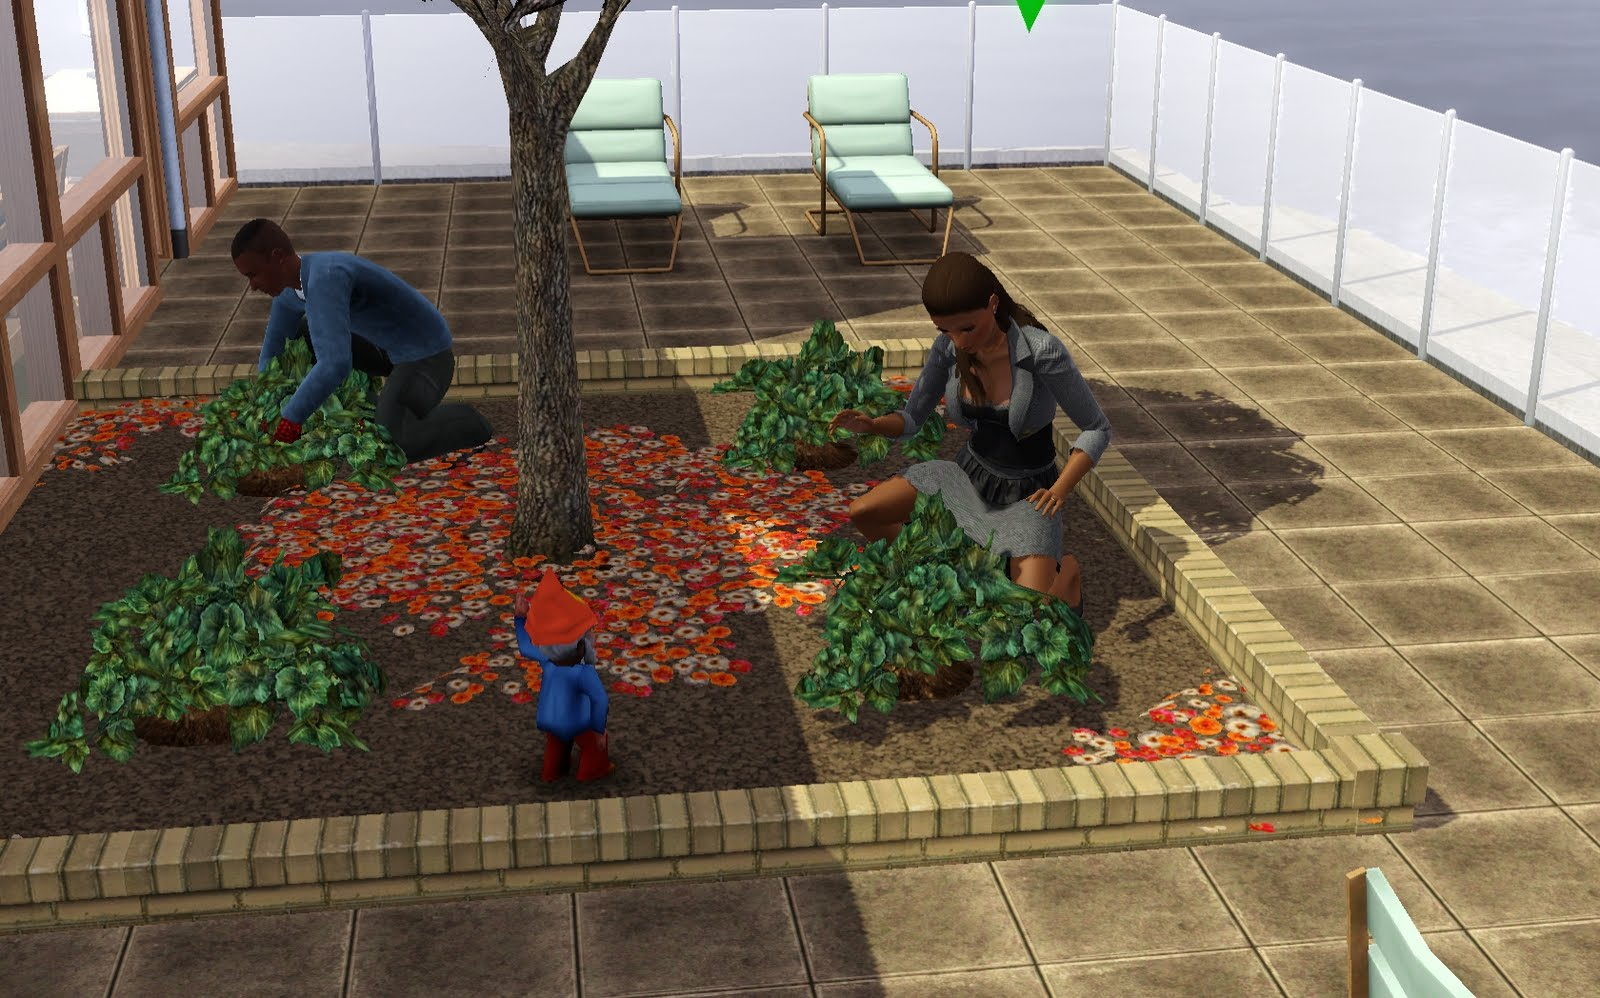 Summers little sims 3 garden how to build a rooftop or balcony how to build a rooftop or balcony garden in the sims 3 sisterspd